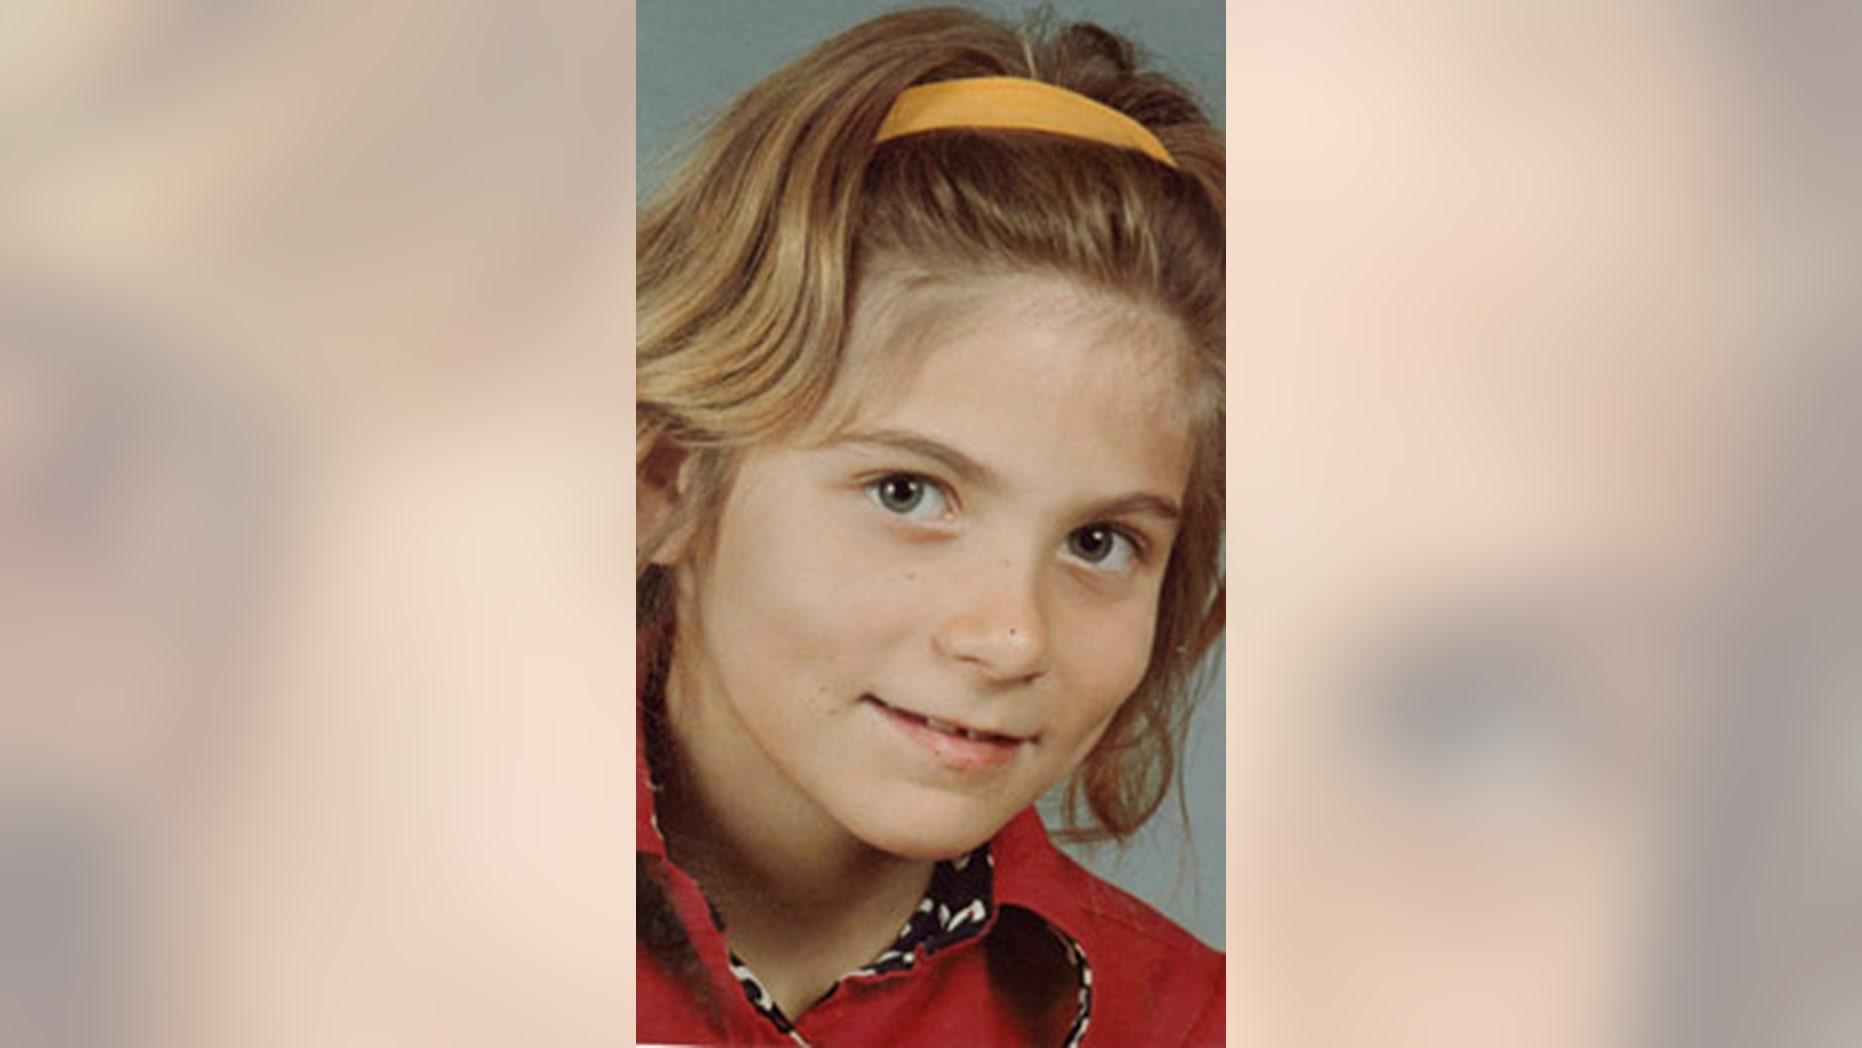 Police in Michigan are searching for the remains of Kimberly King, 12, who disappeared in 1979.